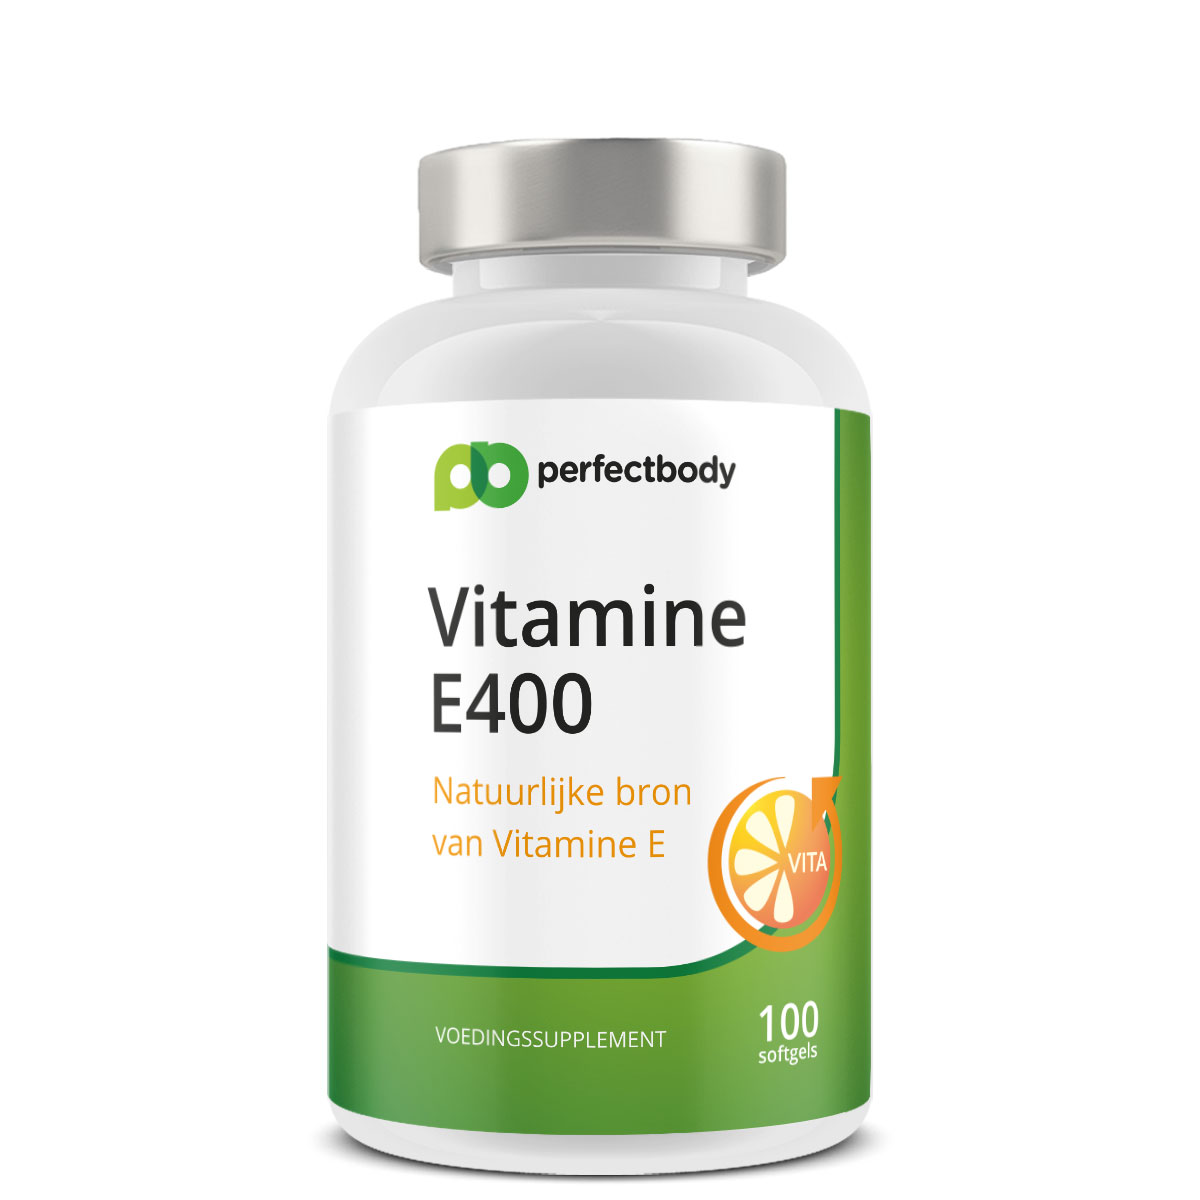 Perfectbody Vitamine E Capsules - 100 Softgels